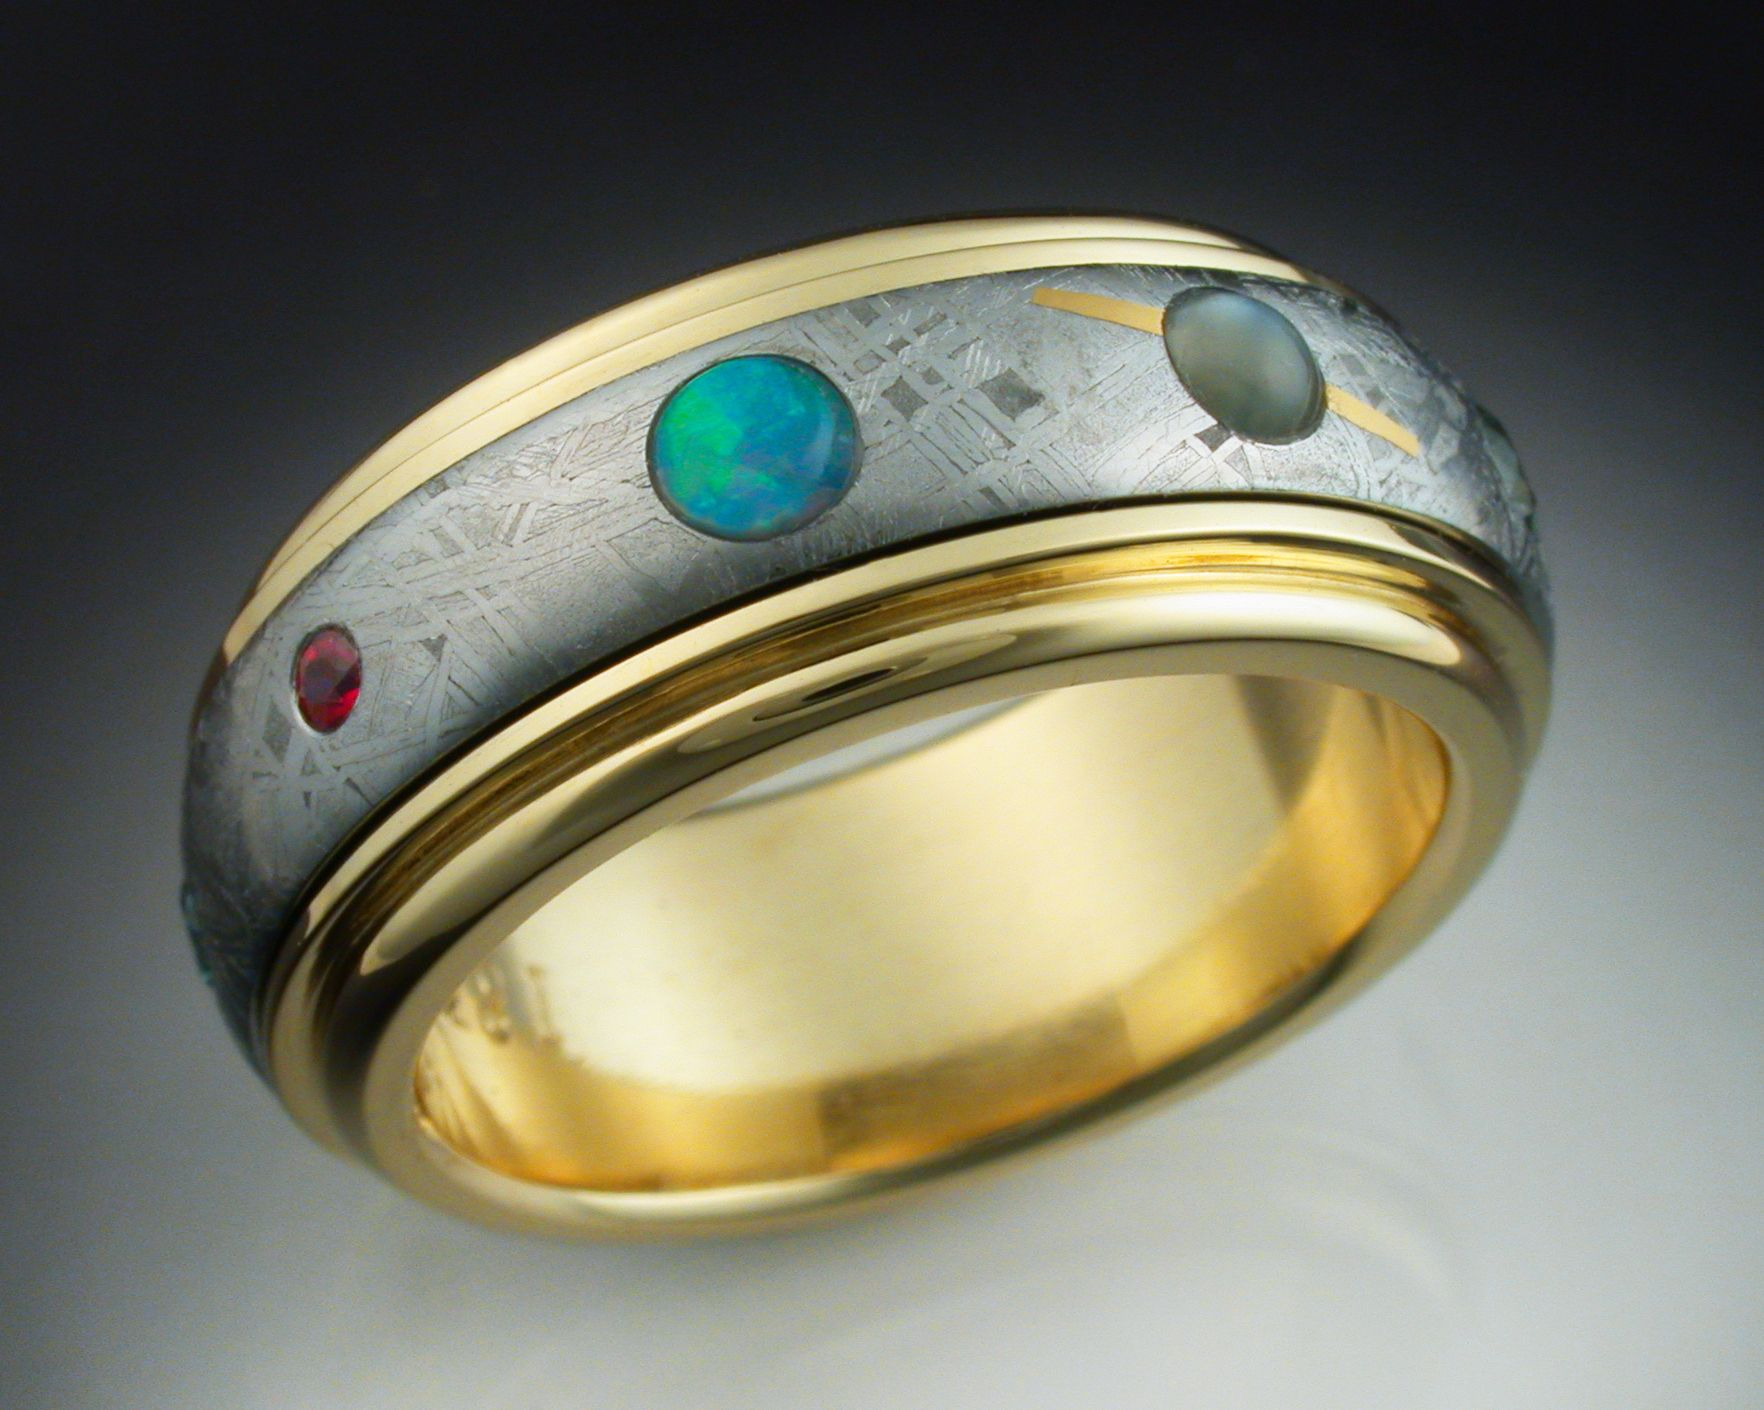 Buy a Hand Crafted The Nine Planets Ring made to order from